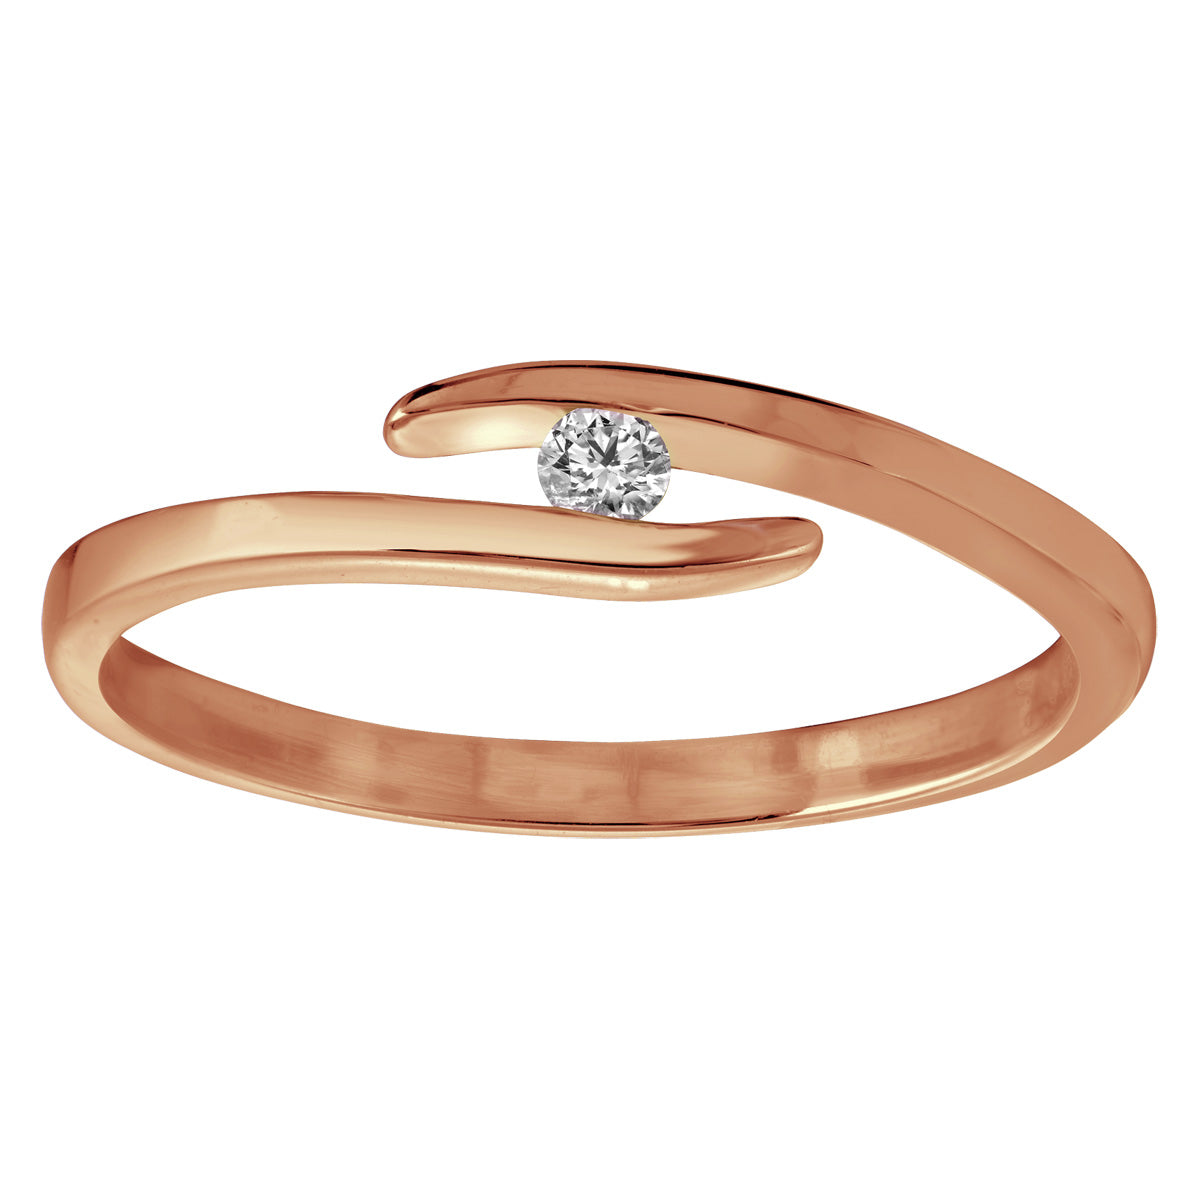 Jessica Jewellery rose gold floating diamond ring.